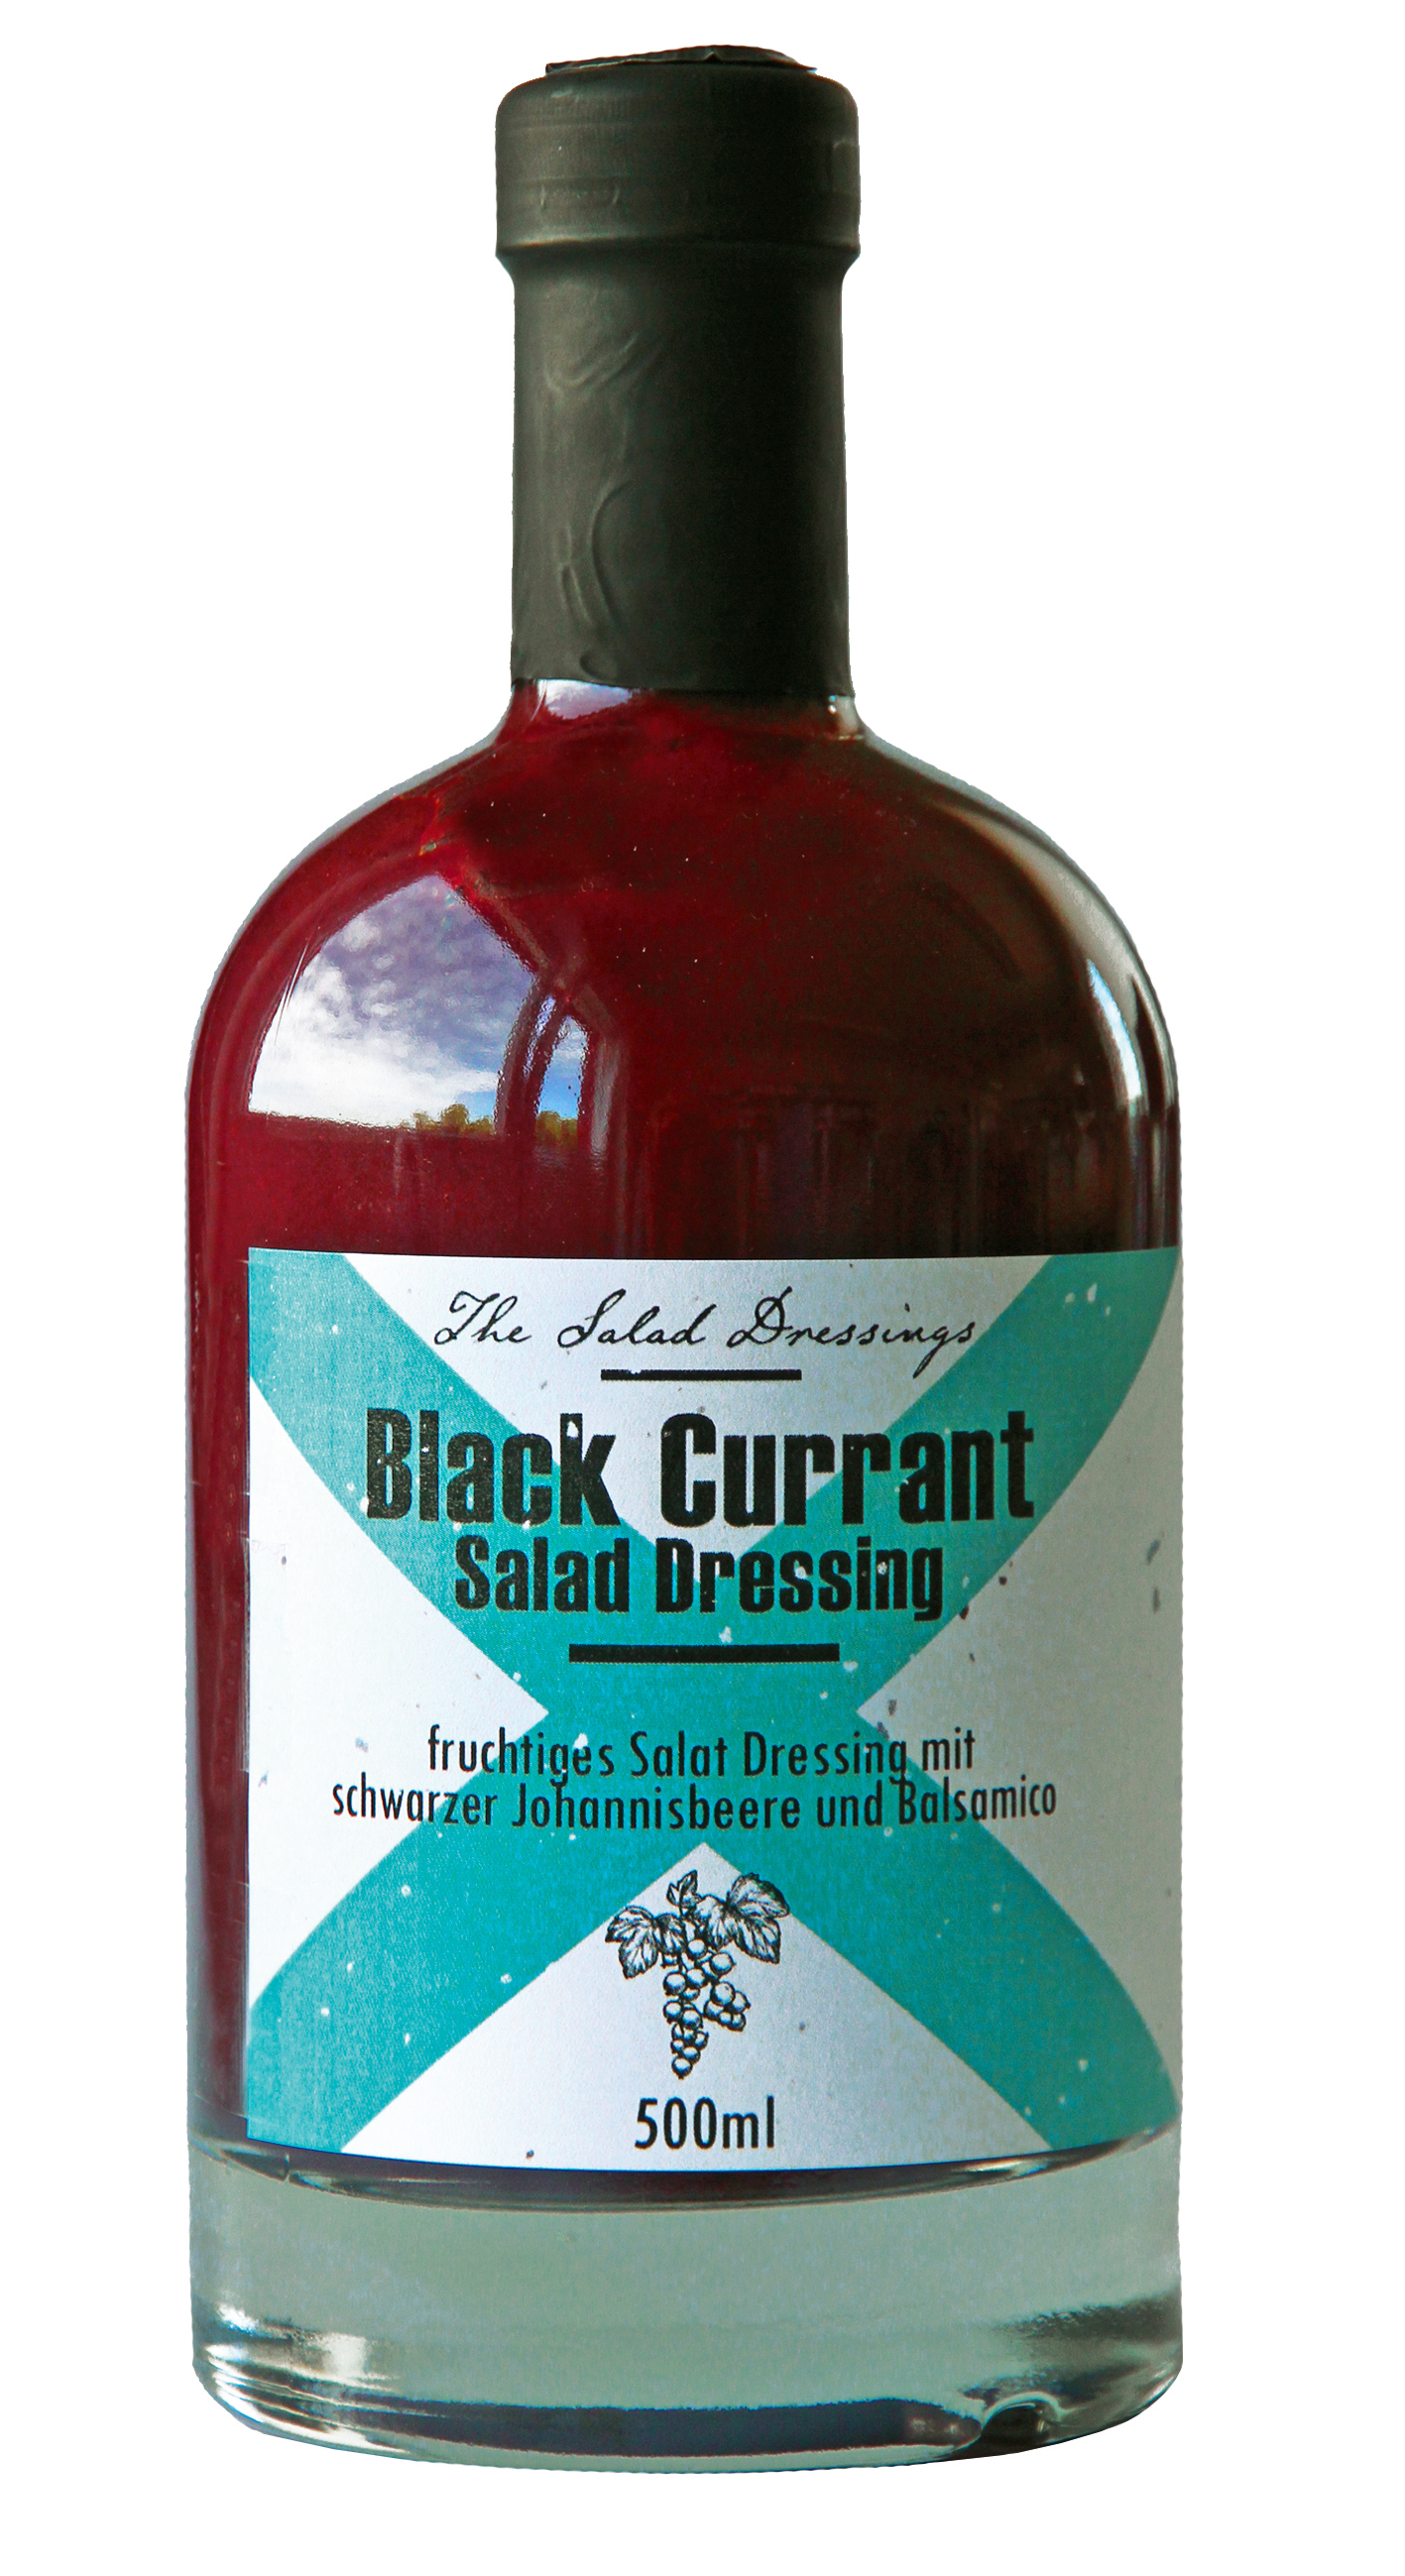 Black Currant Salad Dressing  500ml